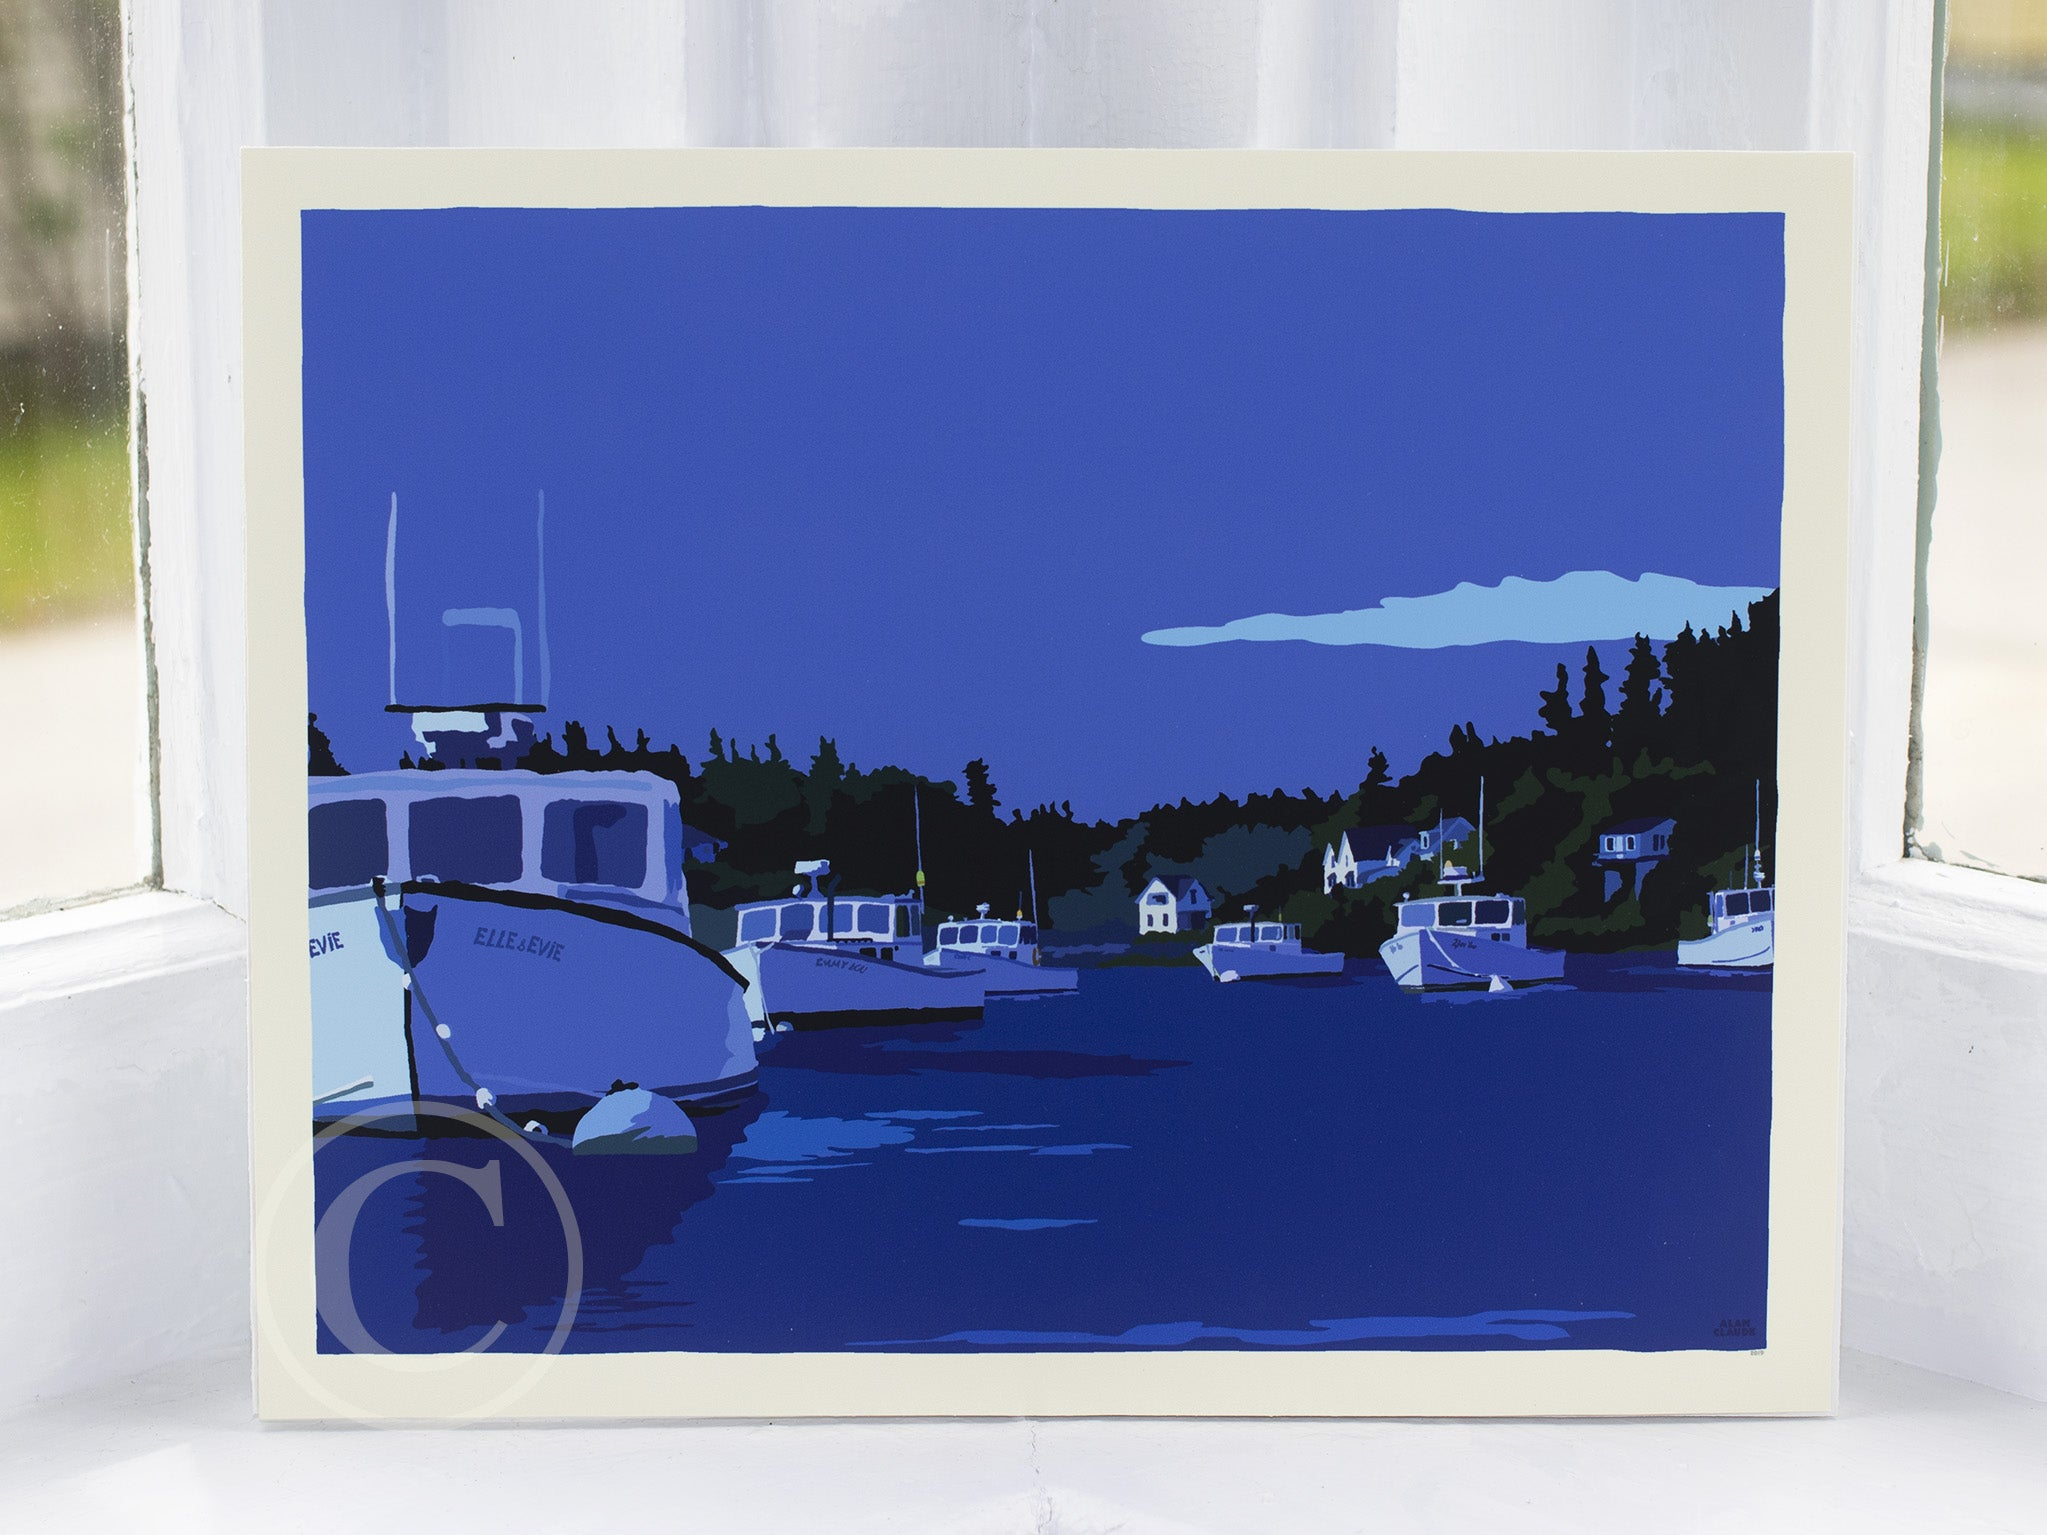 "Moonlight Over Port Clyde Art Print 8"" x 10"" Wall Poster by Alan Claude"